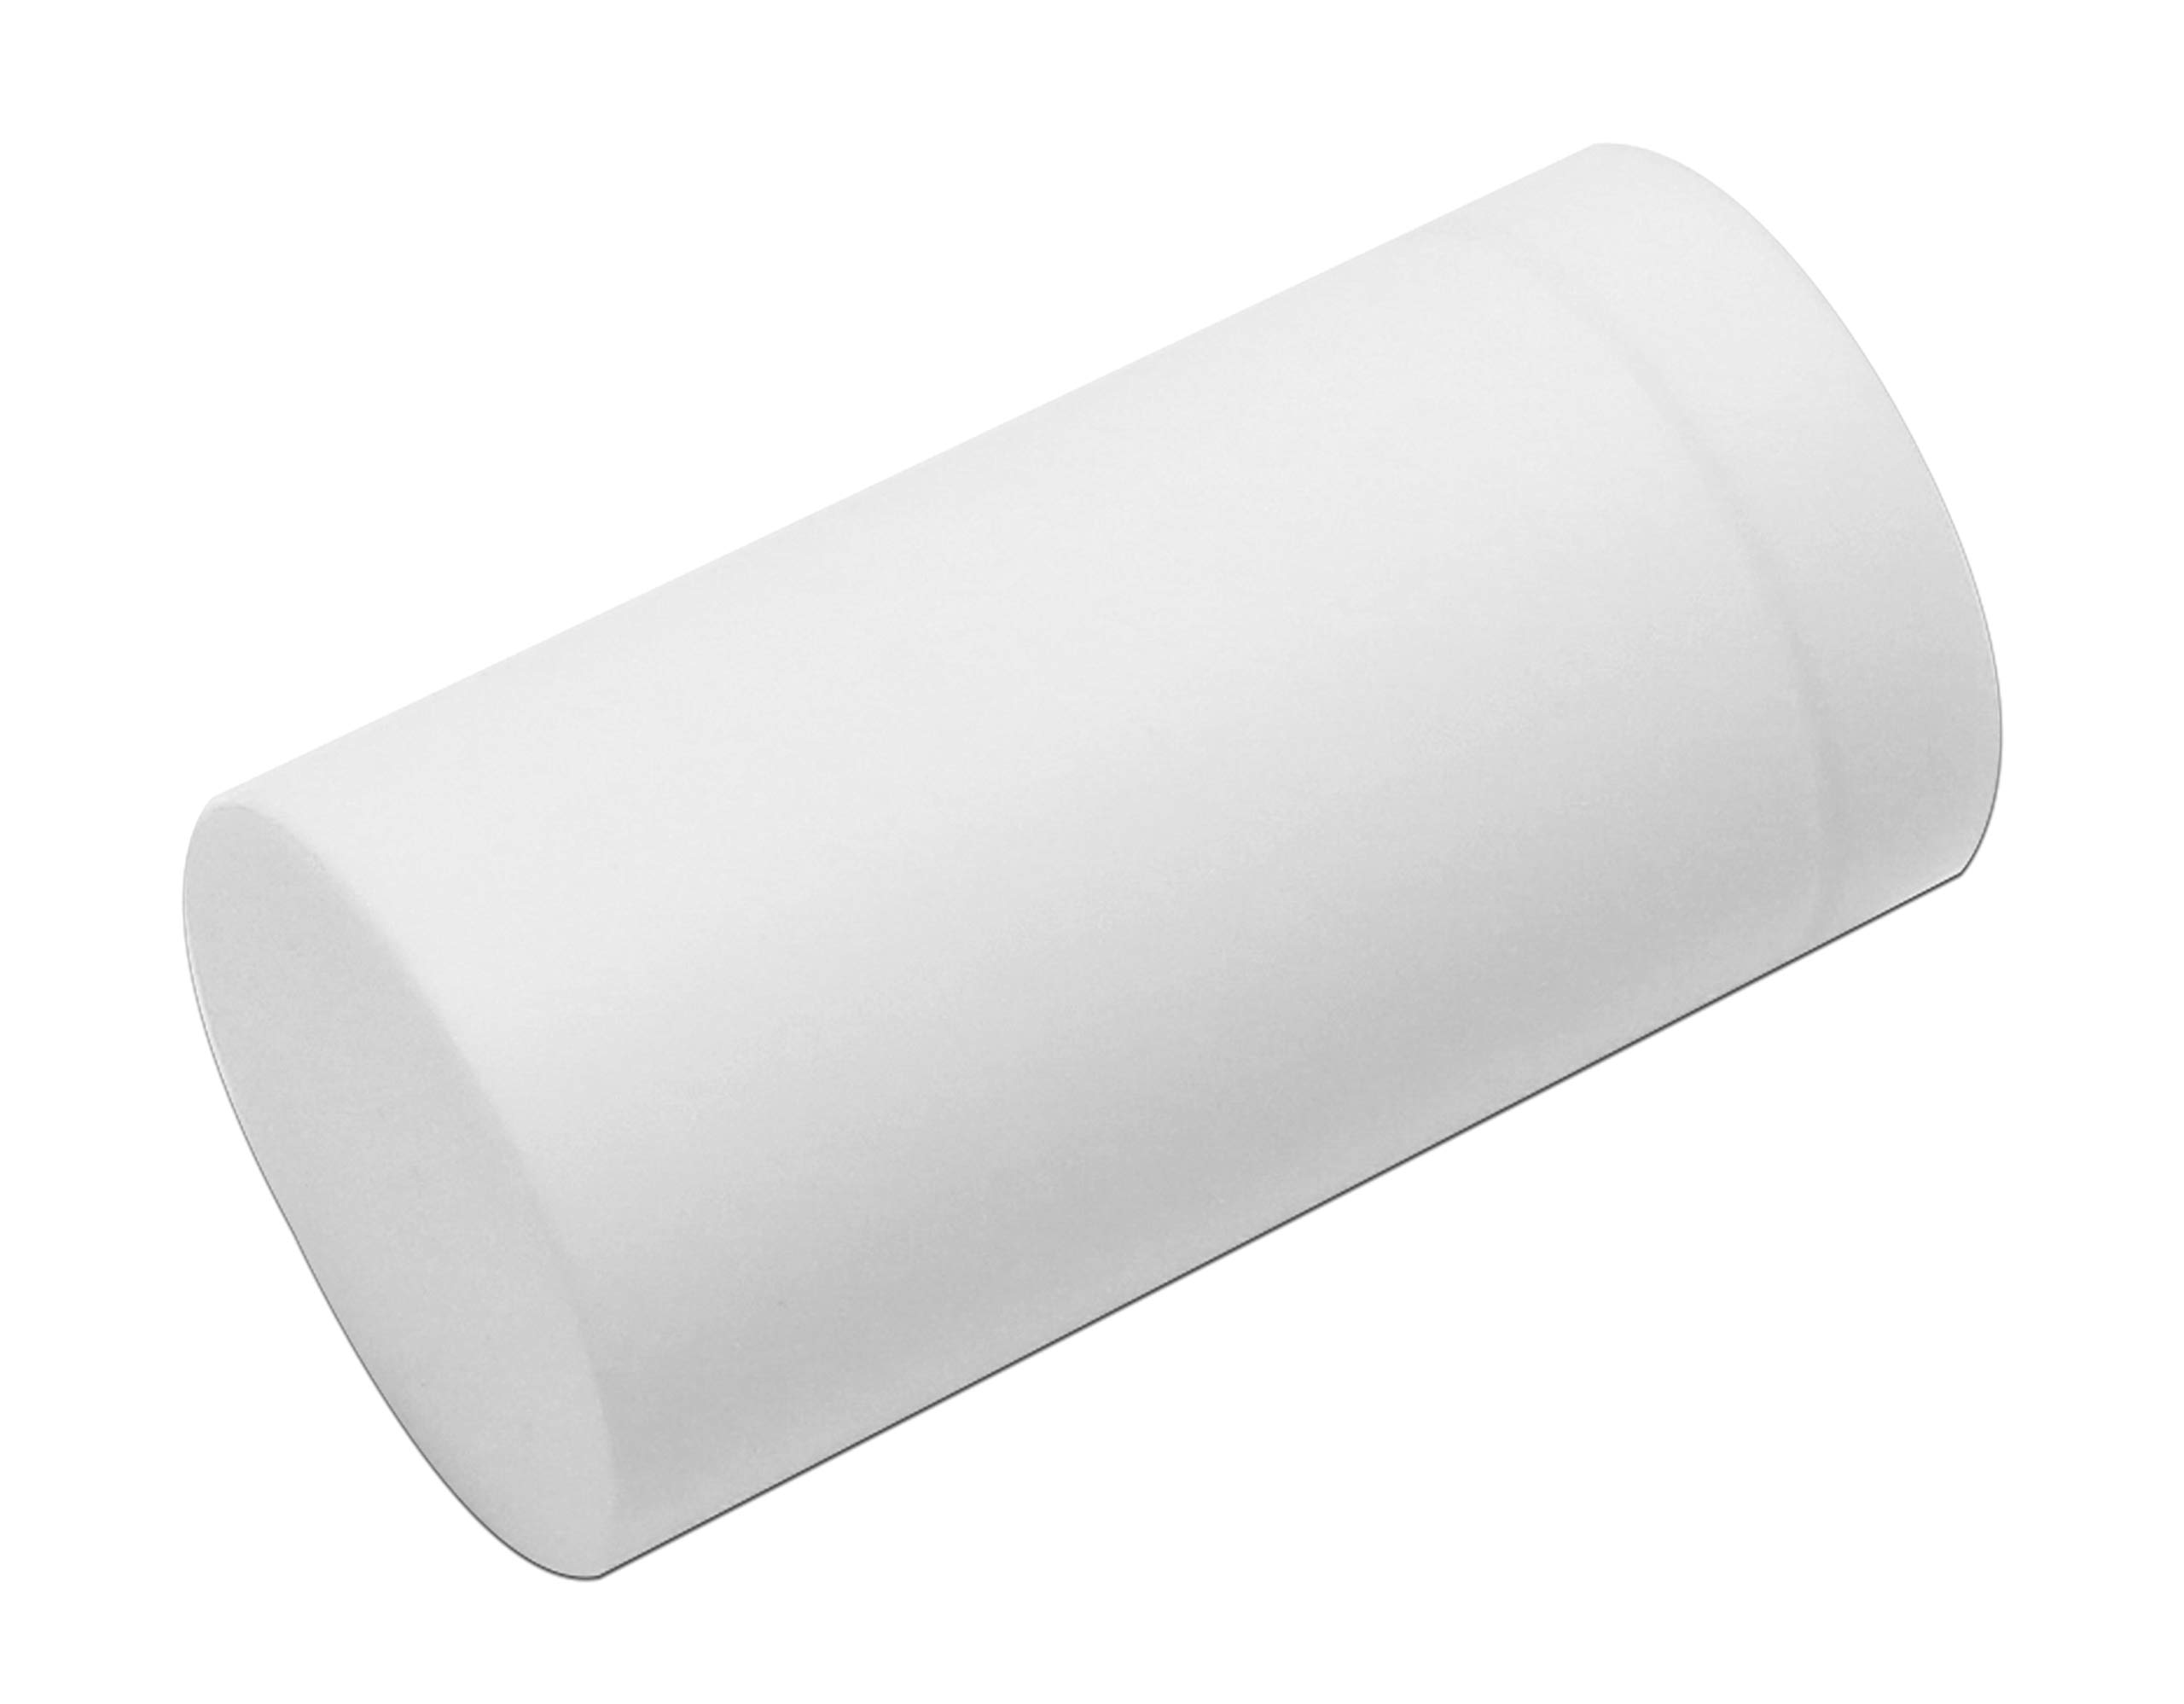 BAOSHISHAN PTFE Lined Vessel Lined Tank Teflon Liner Container for Hydrothermal Synthesis Autoclave Reactor (50ml) by BAOSHISHAN